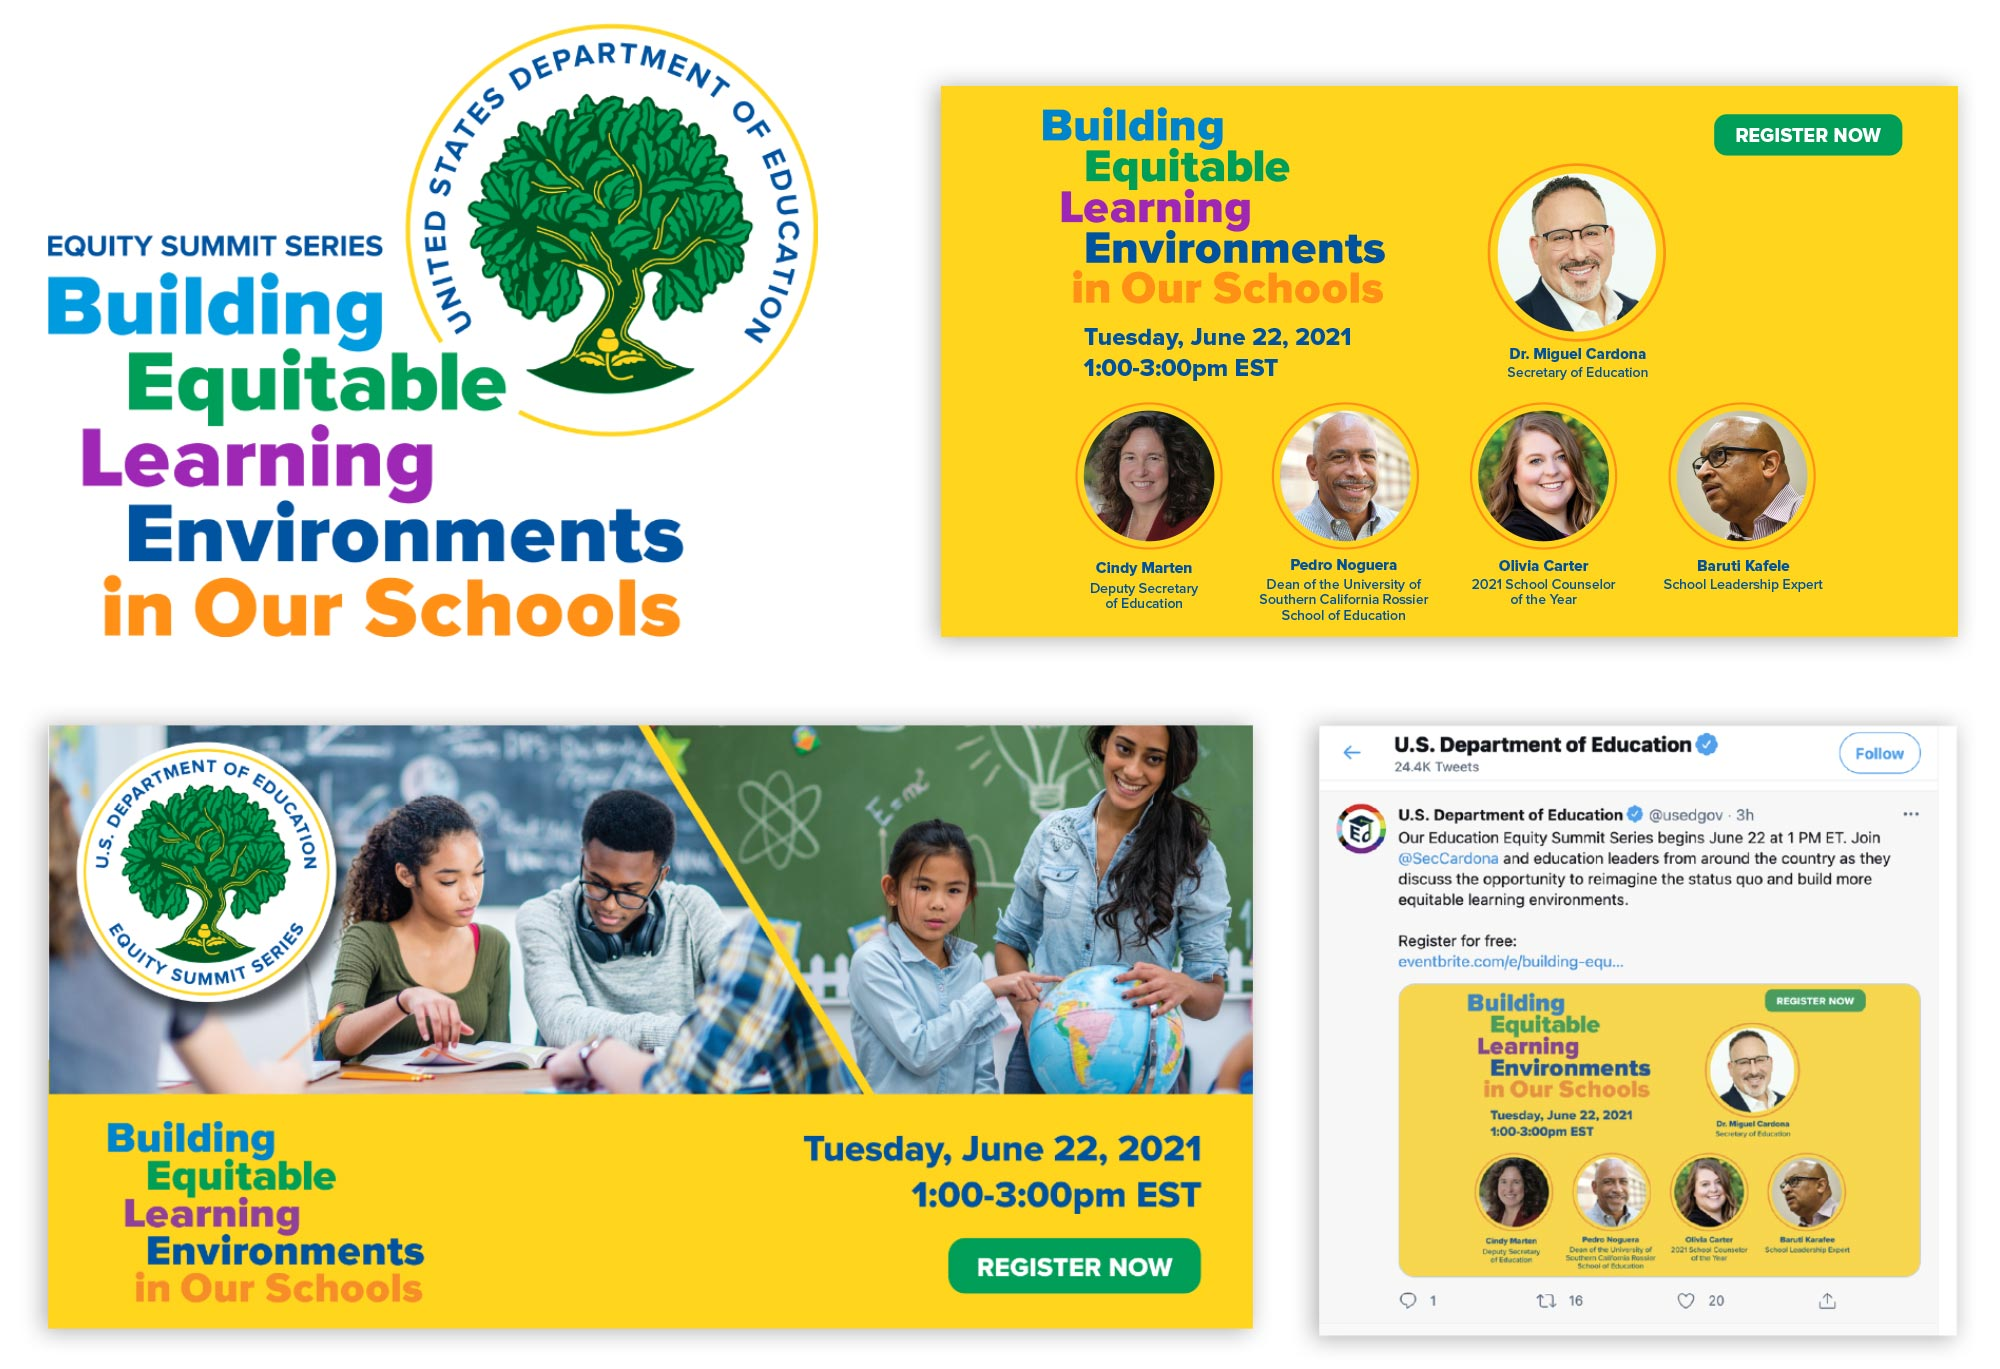 The Educational Equity Summit Series: Event identity, header graphics and social media posts